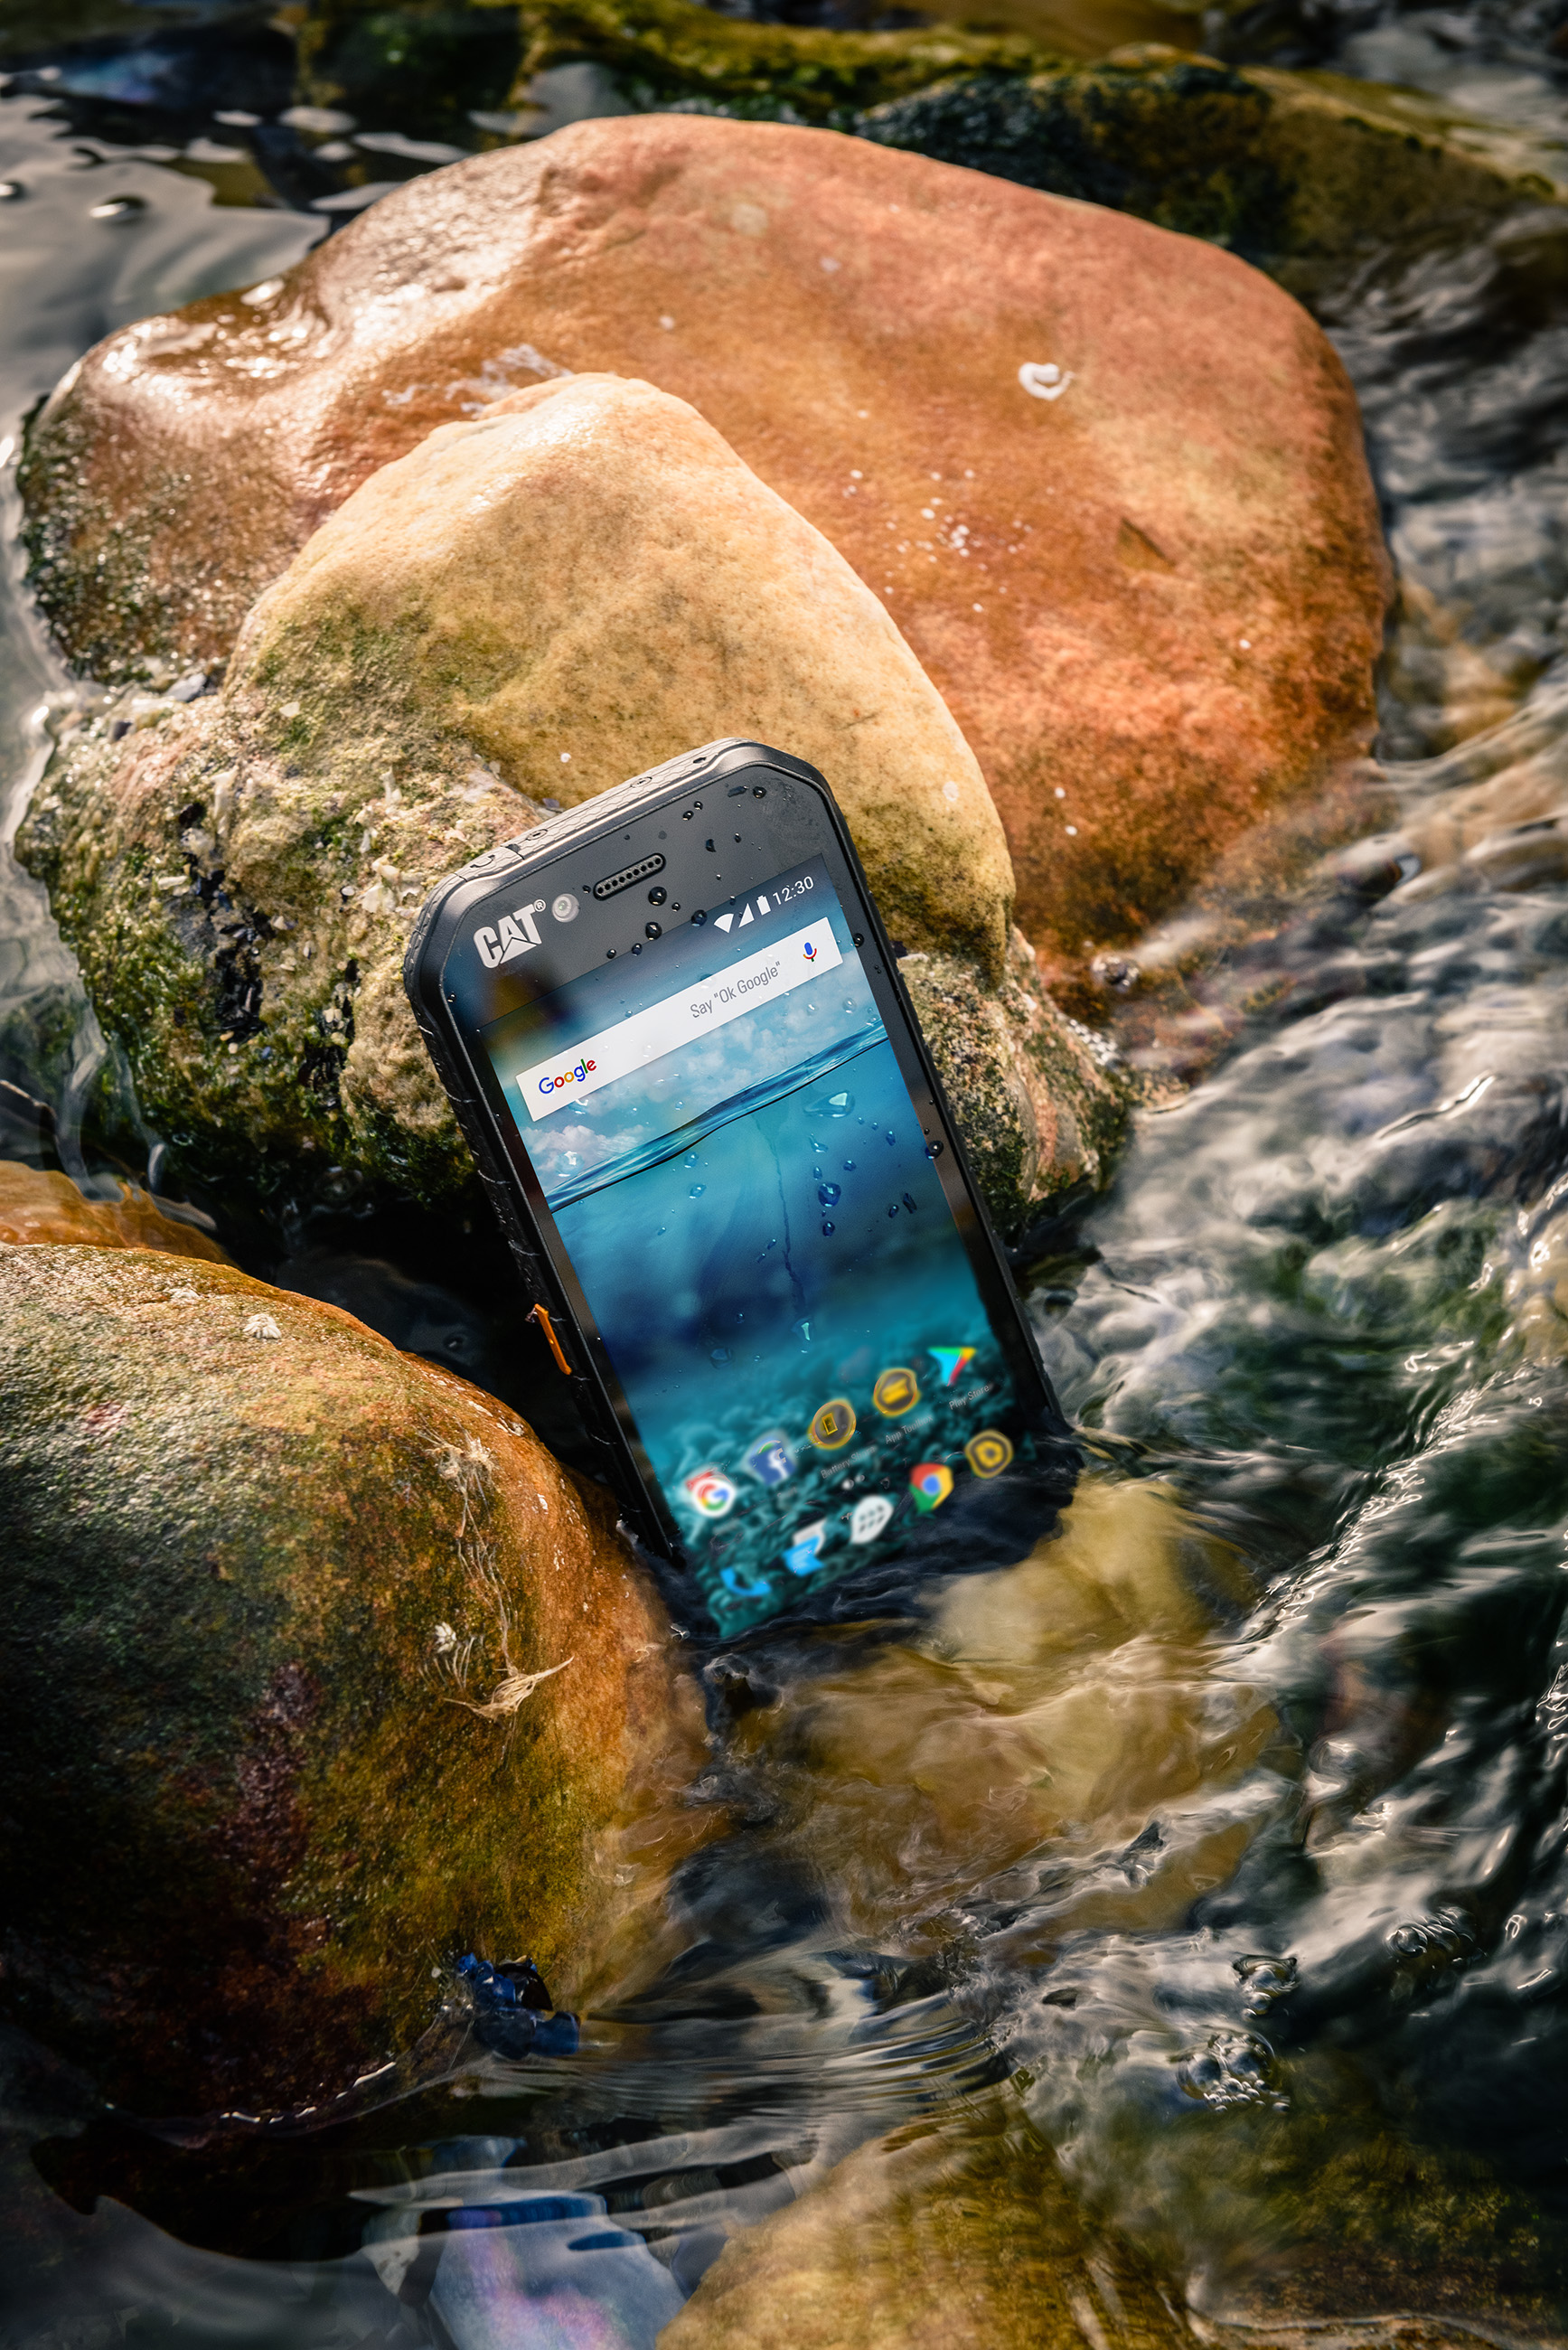 Discover The New Rugged Cat 174 S41 Smartphone Extreme Power